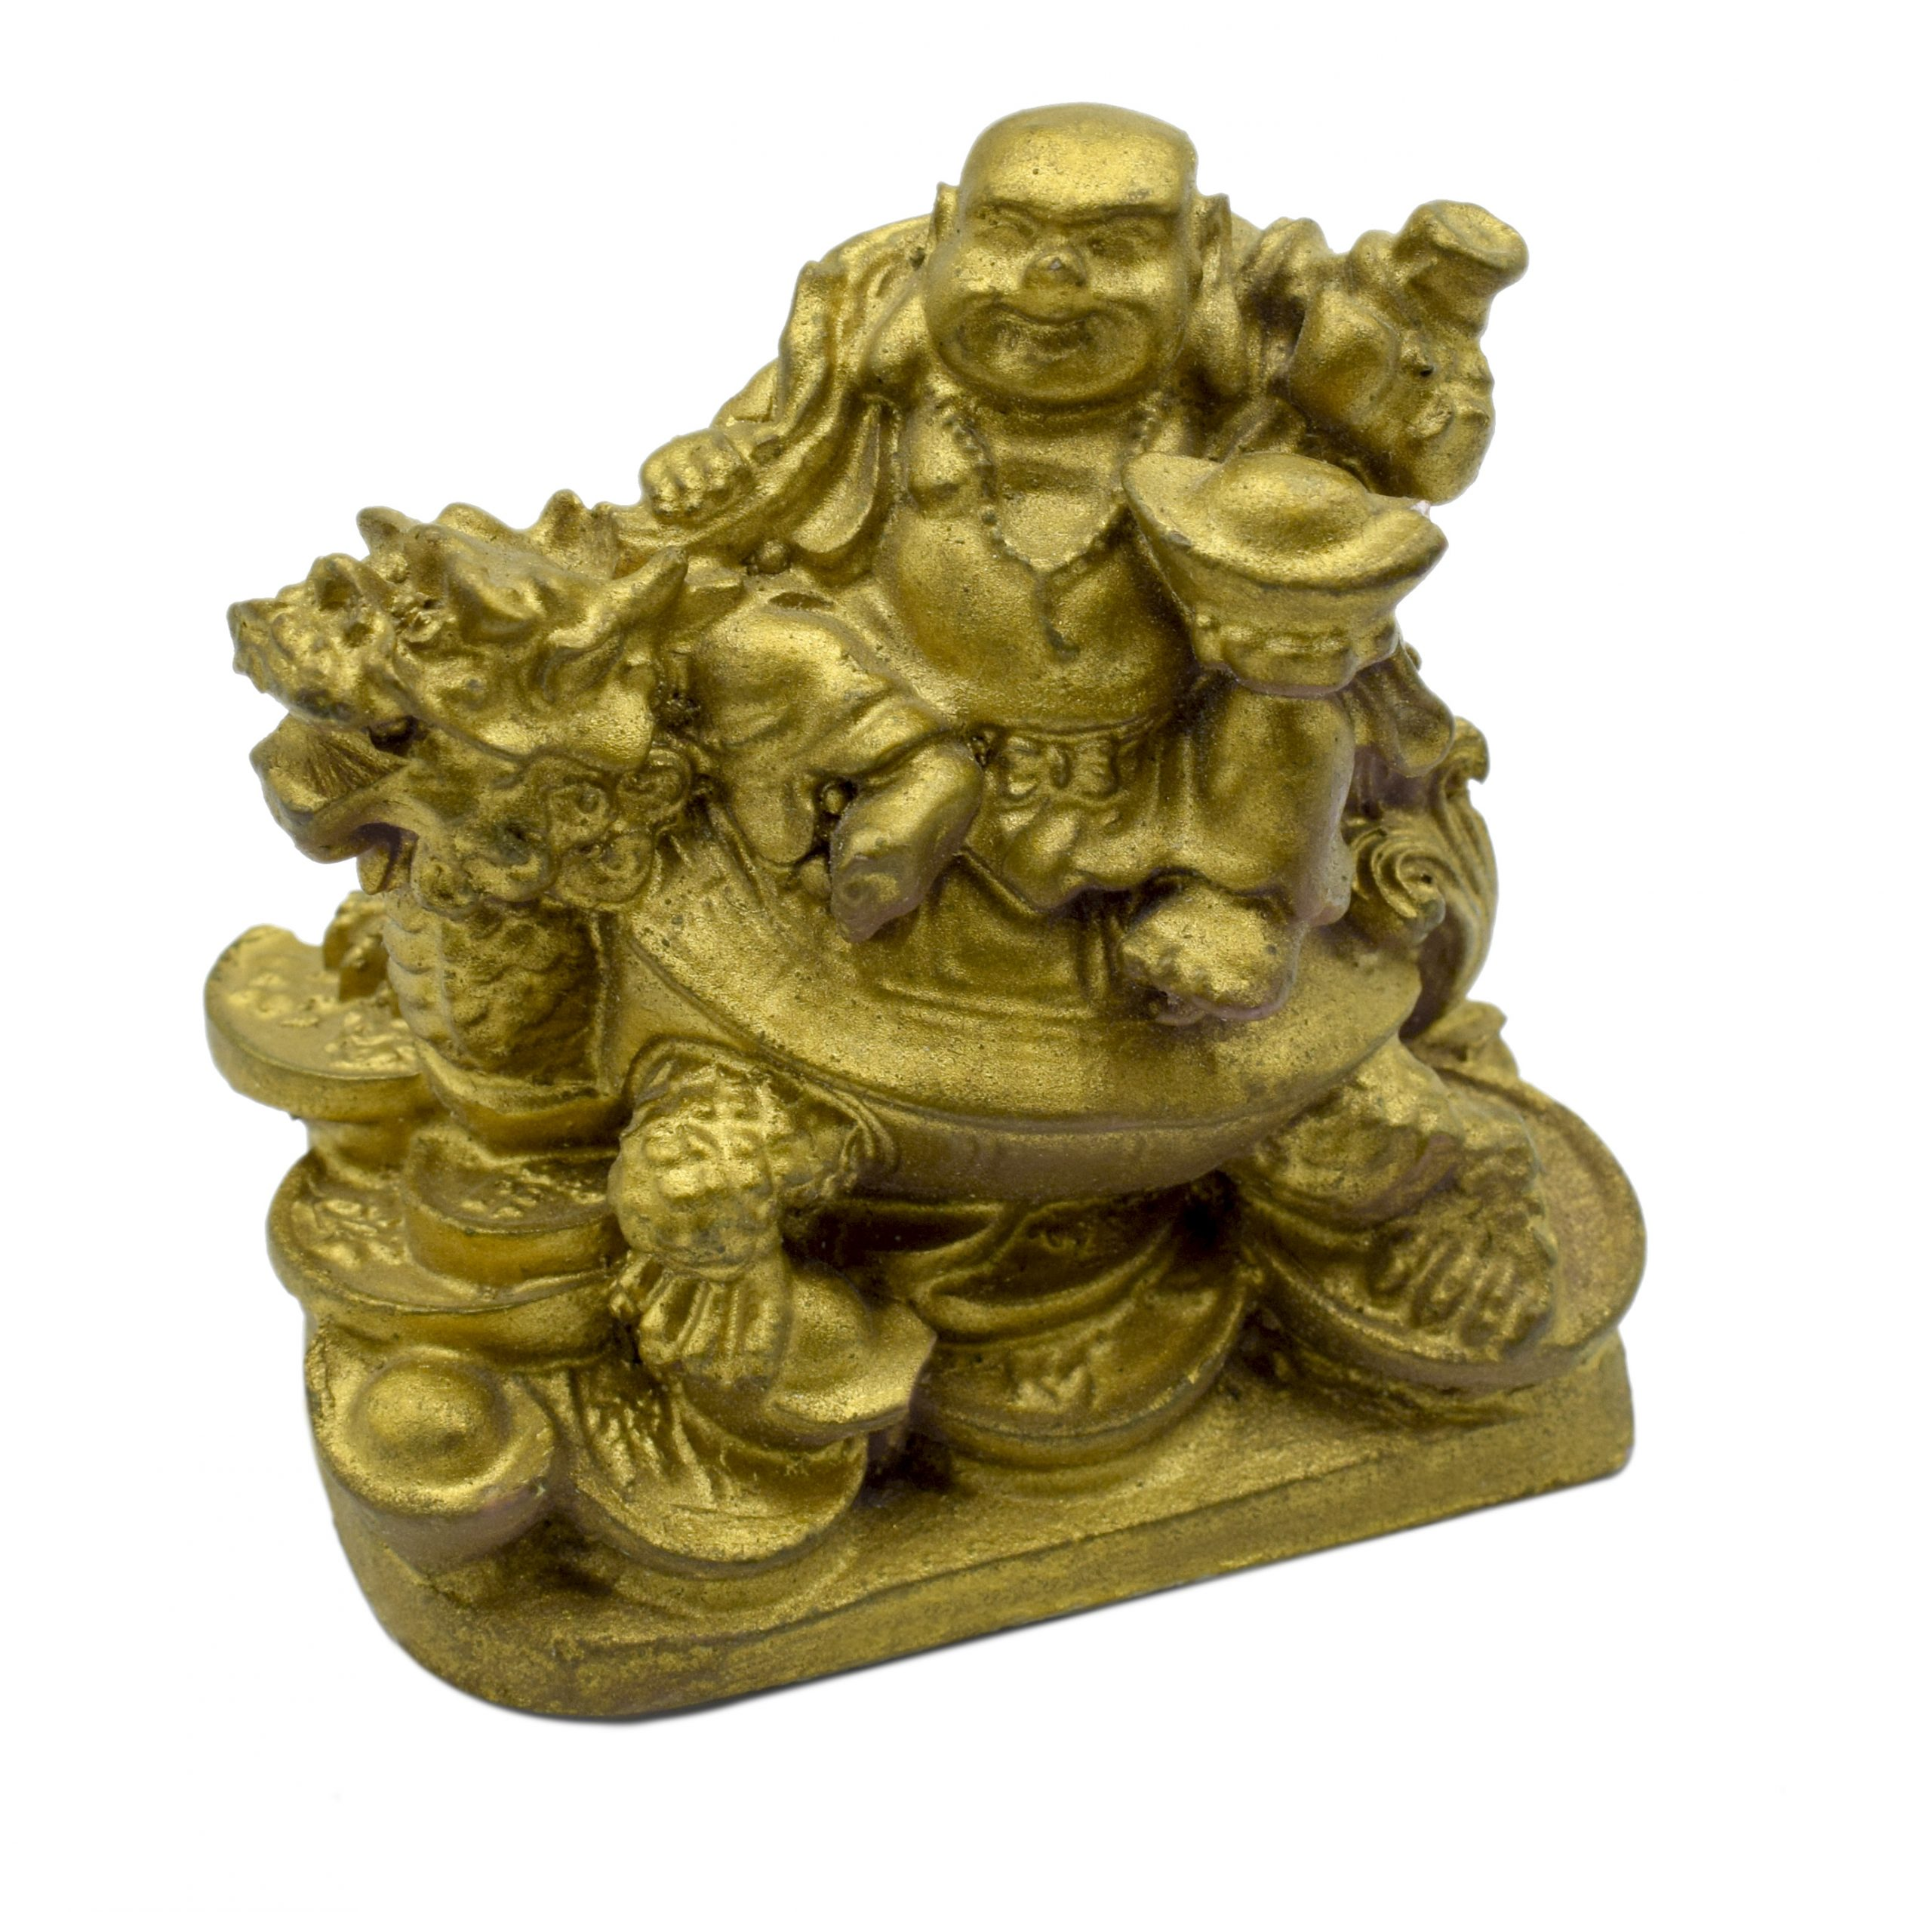 Buy Feng Shui Laughing Buddha Riding on Dragon